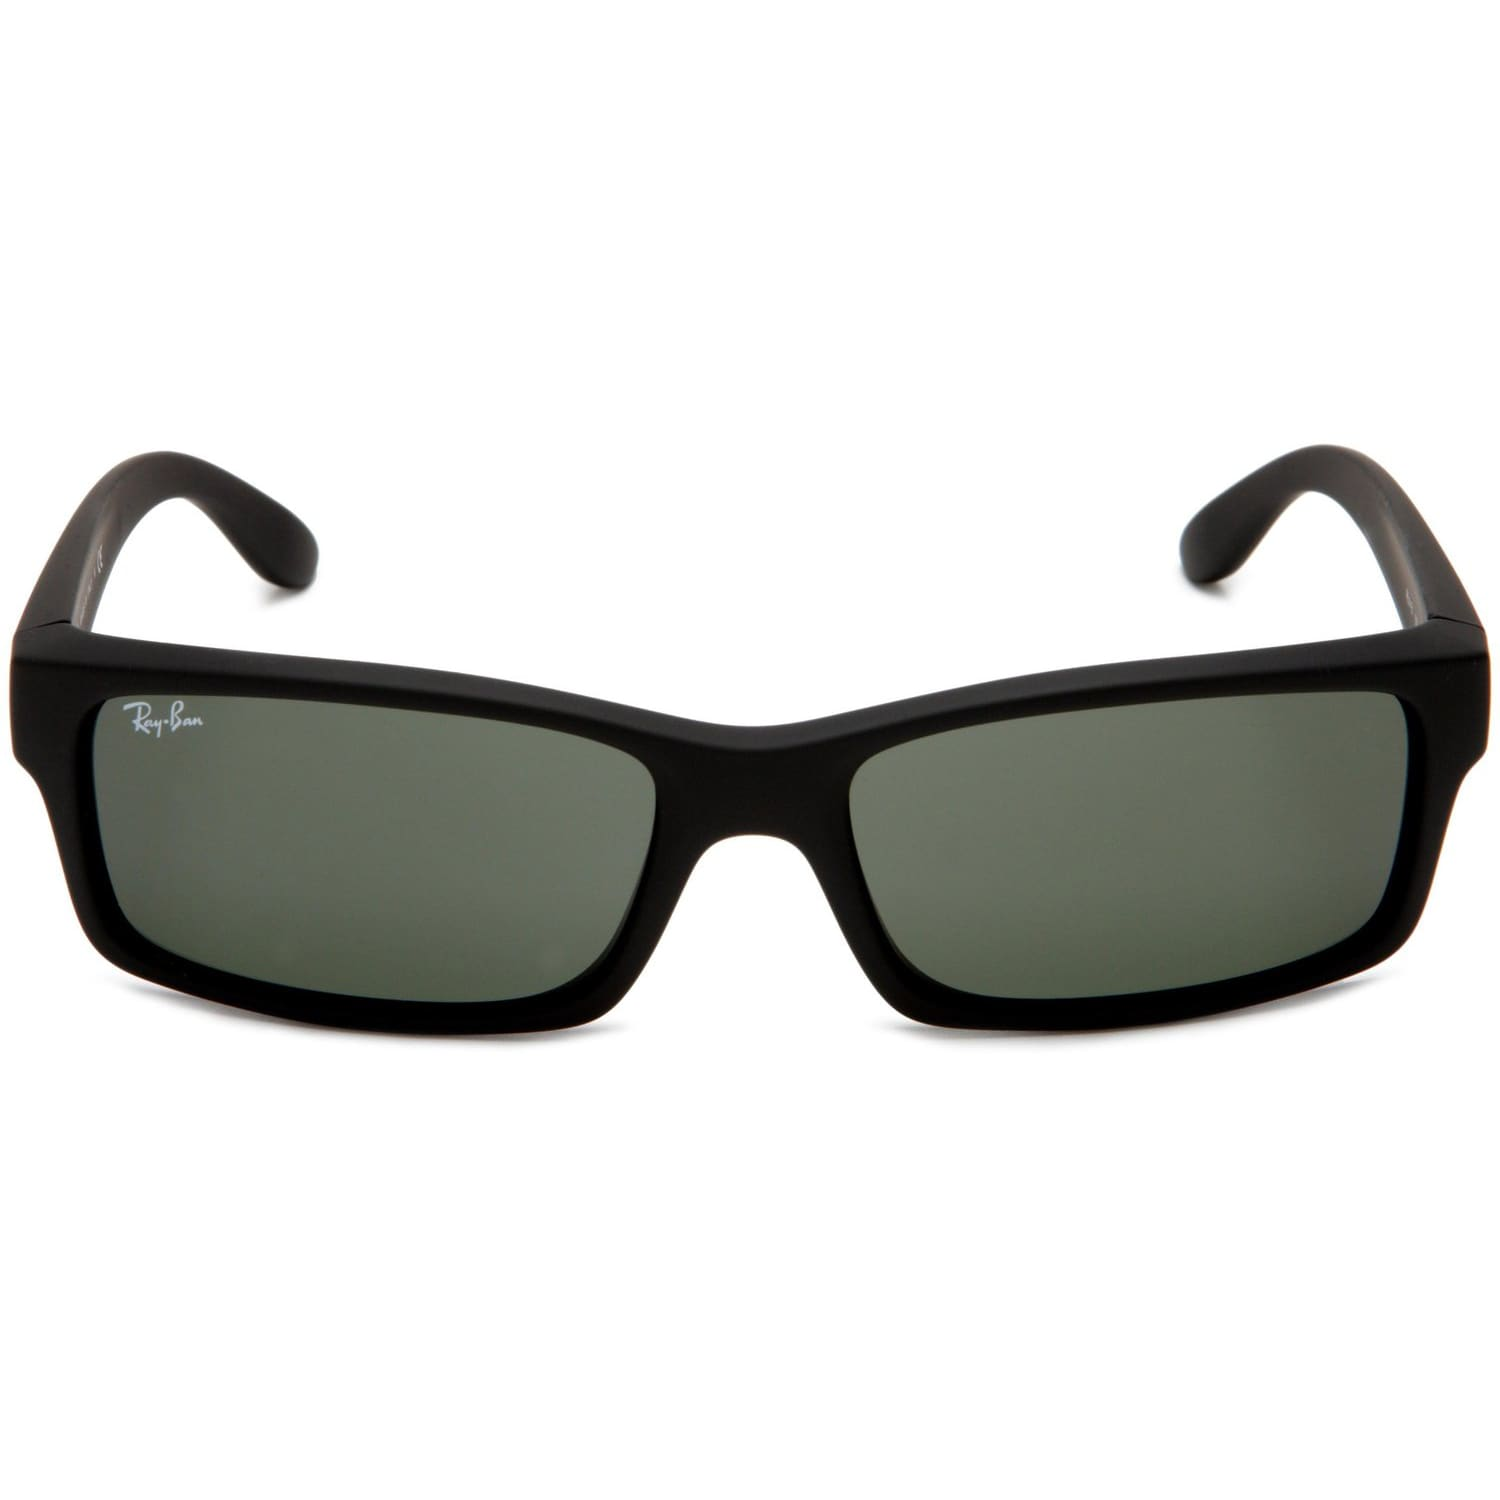 3b62702a19 ... czech shop ray ban unisex rb4151 622 sunglasses black free shipping  today overstock 6843296 99659 7a6e9